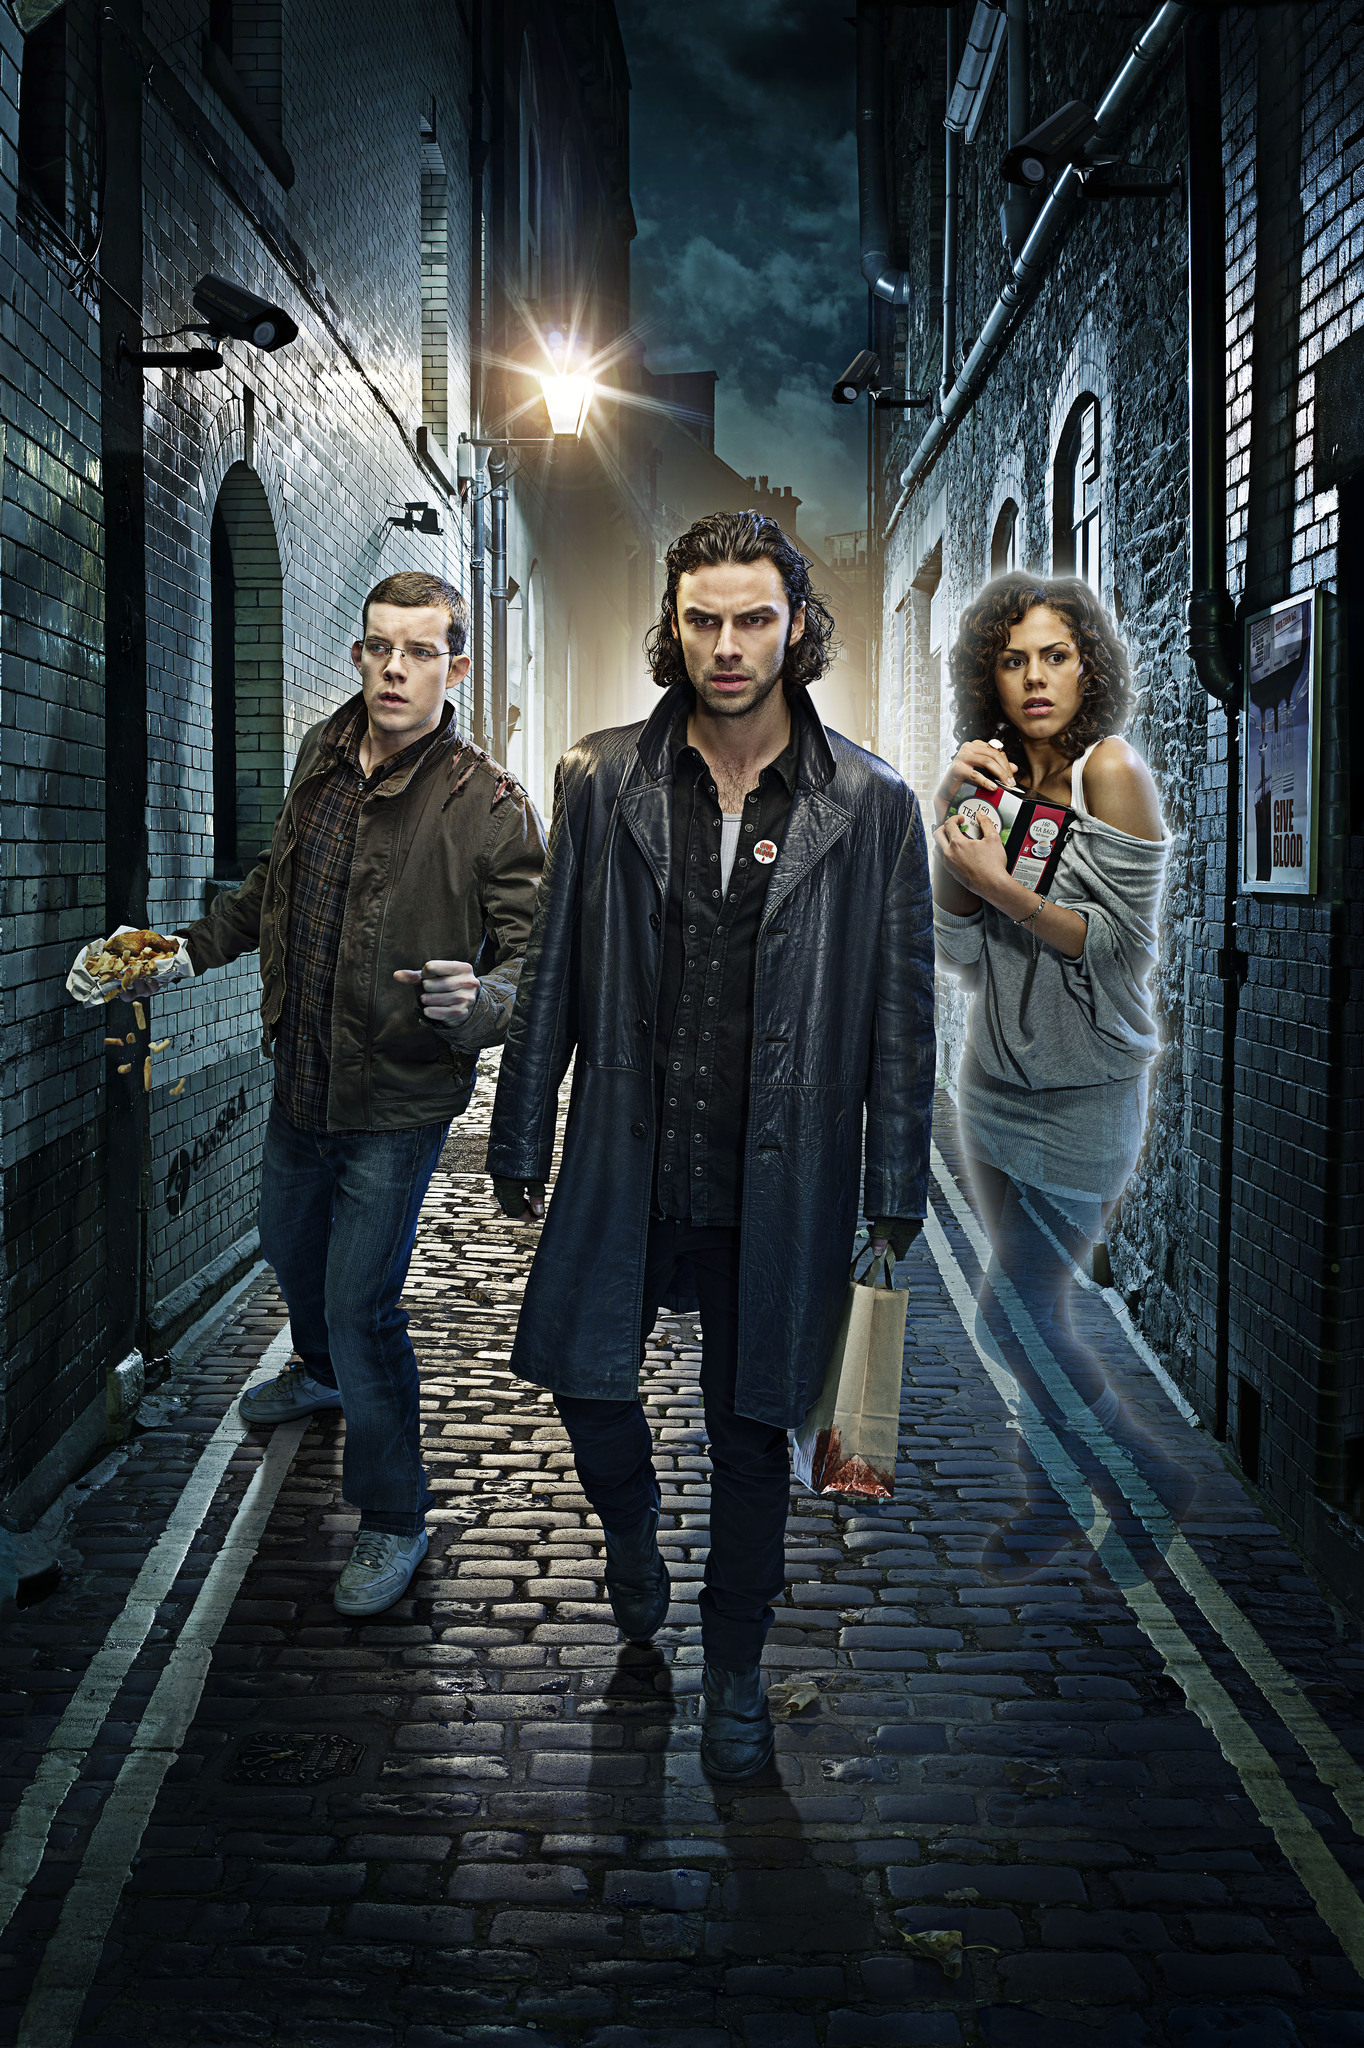 Still of Russell Tovey, Lenora Crichlow and Aidan Turner in Being Human (2008) photo #502410